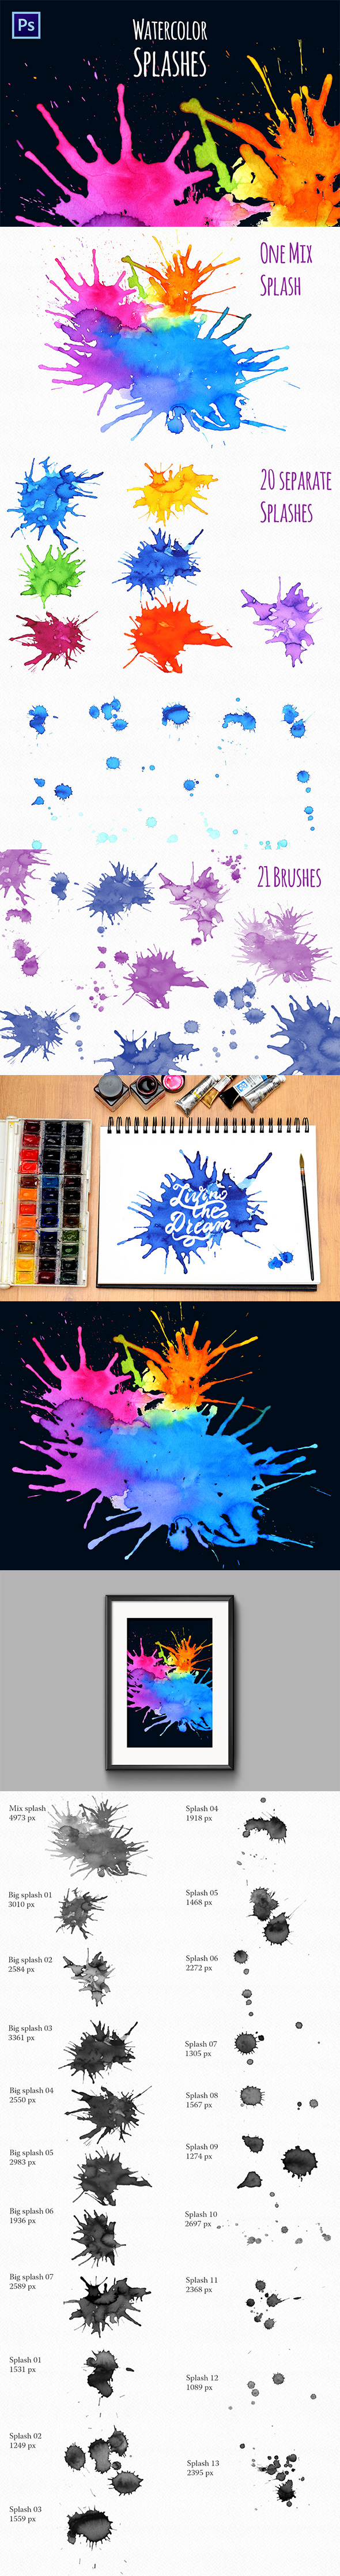 Watercolor Splash Brushes - Texture Brushes